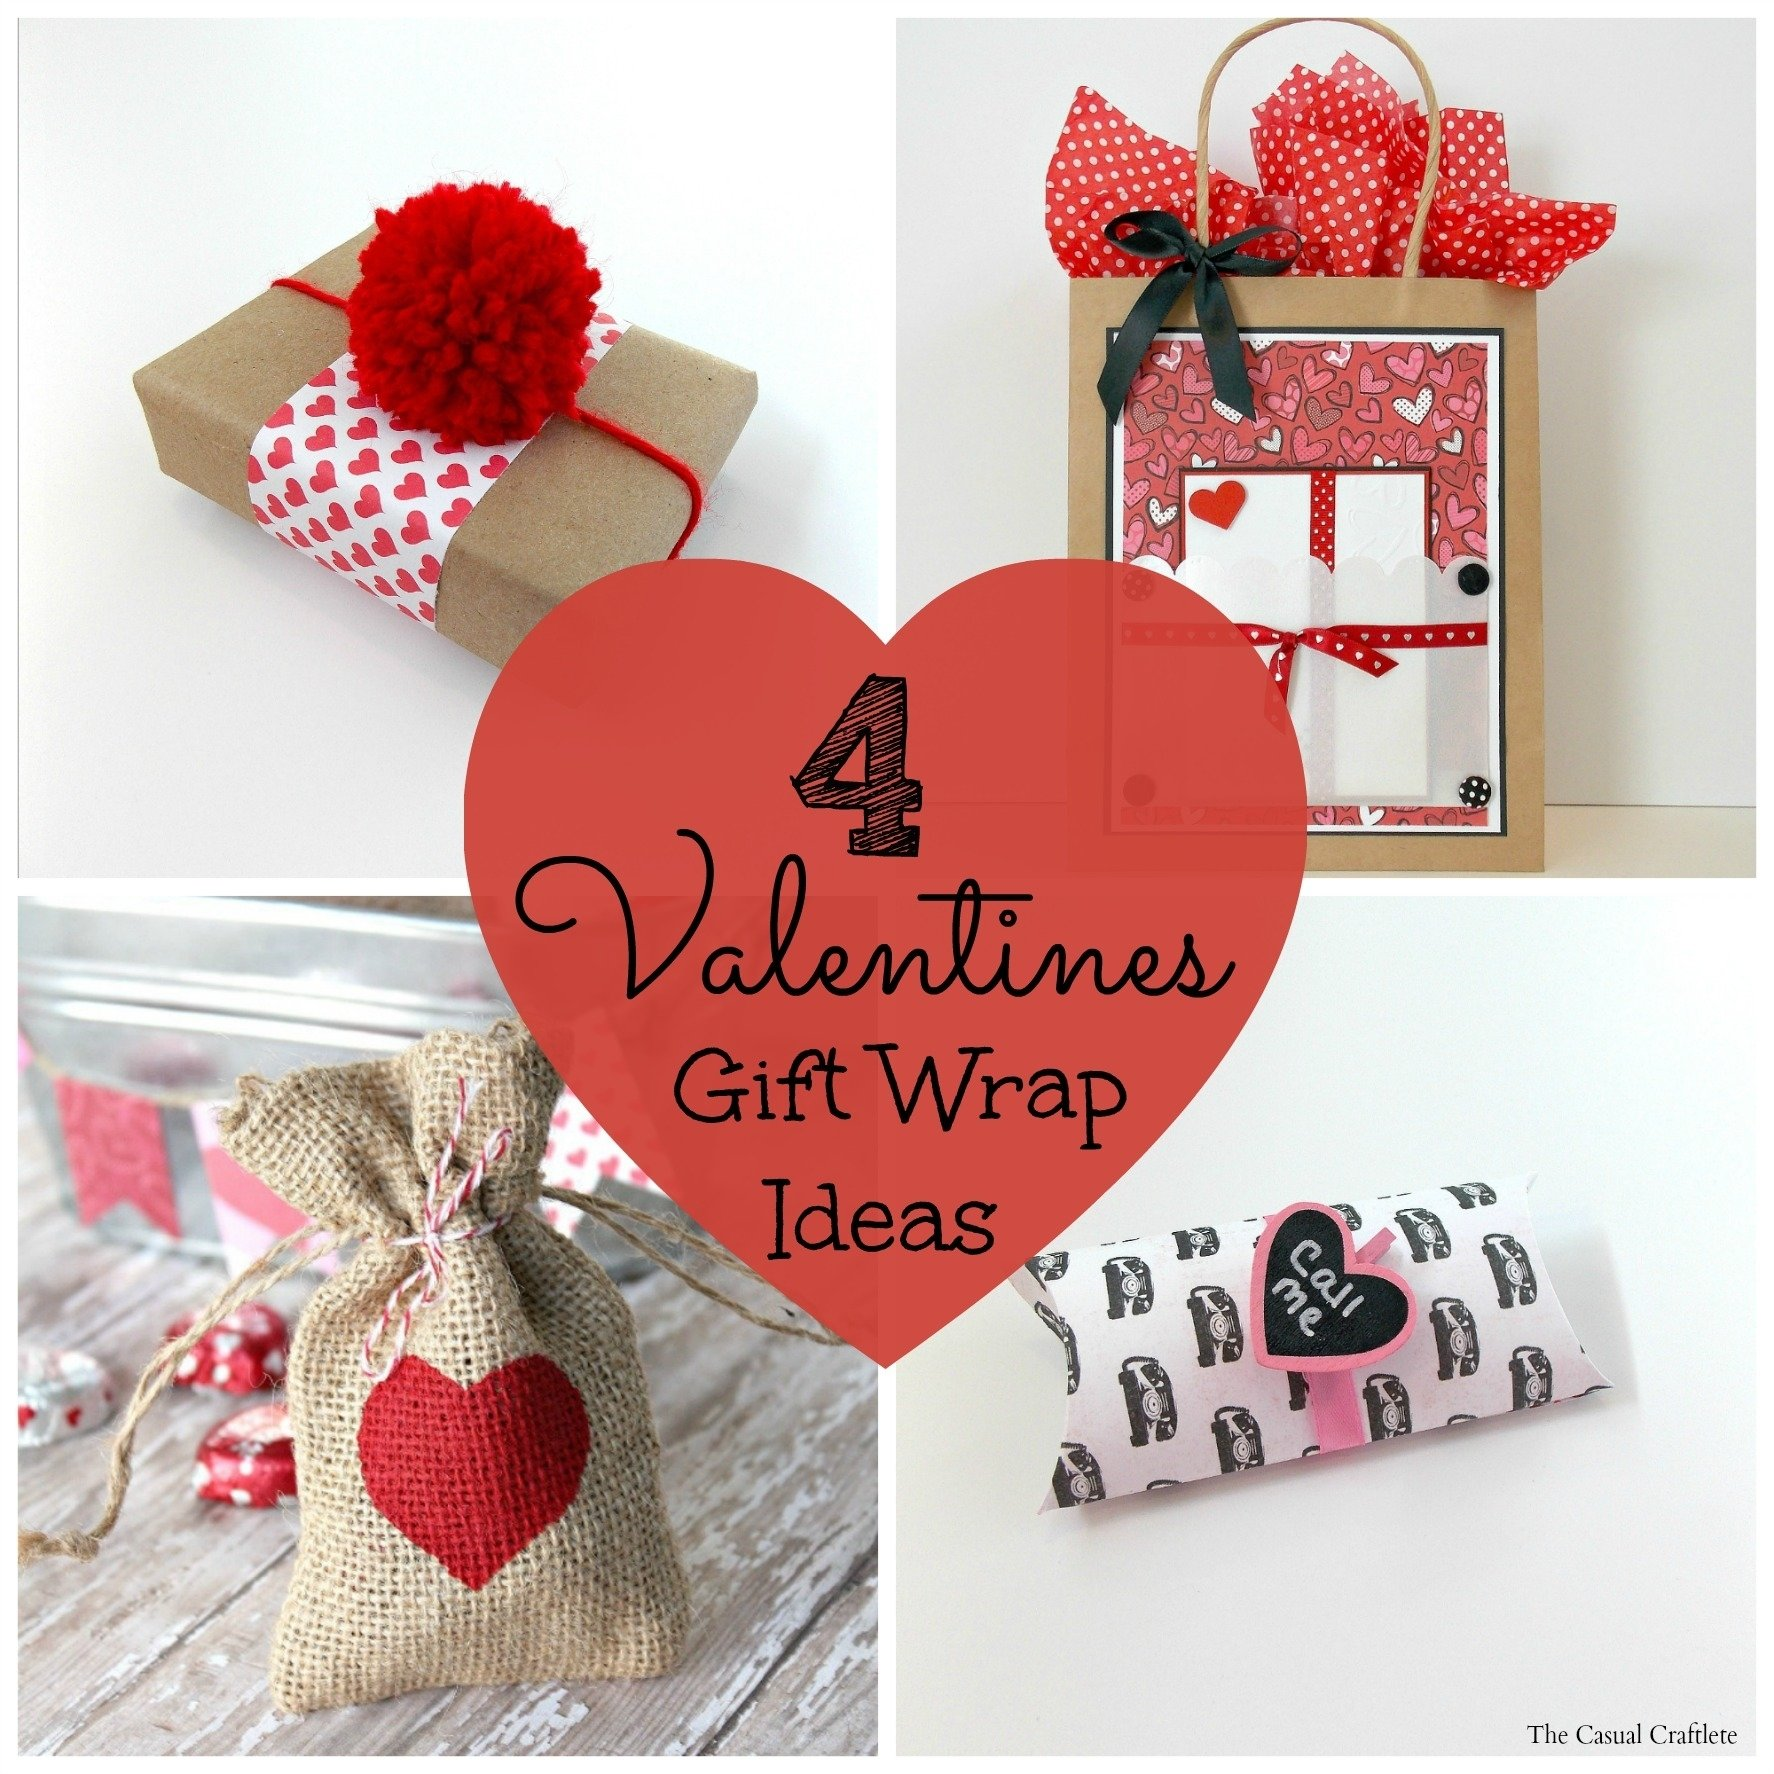 10 Fantastic Valentine Gifts Ideas For Her valentines day gift ideas for girlfriend 2018 new ideas 4 2021